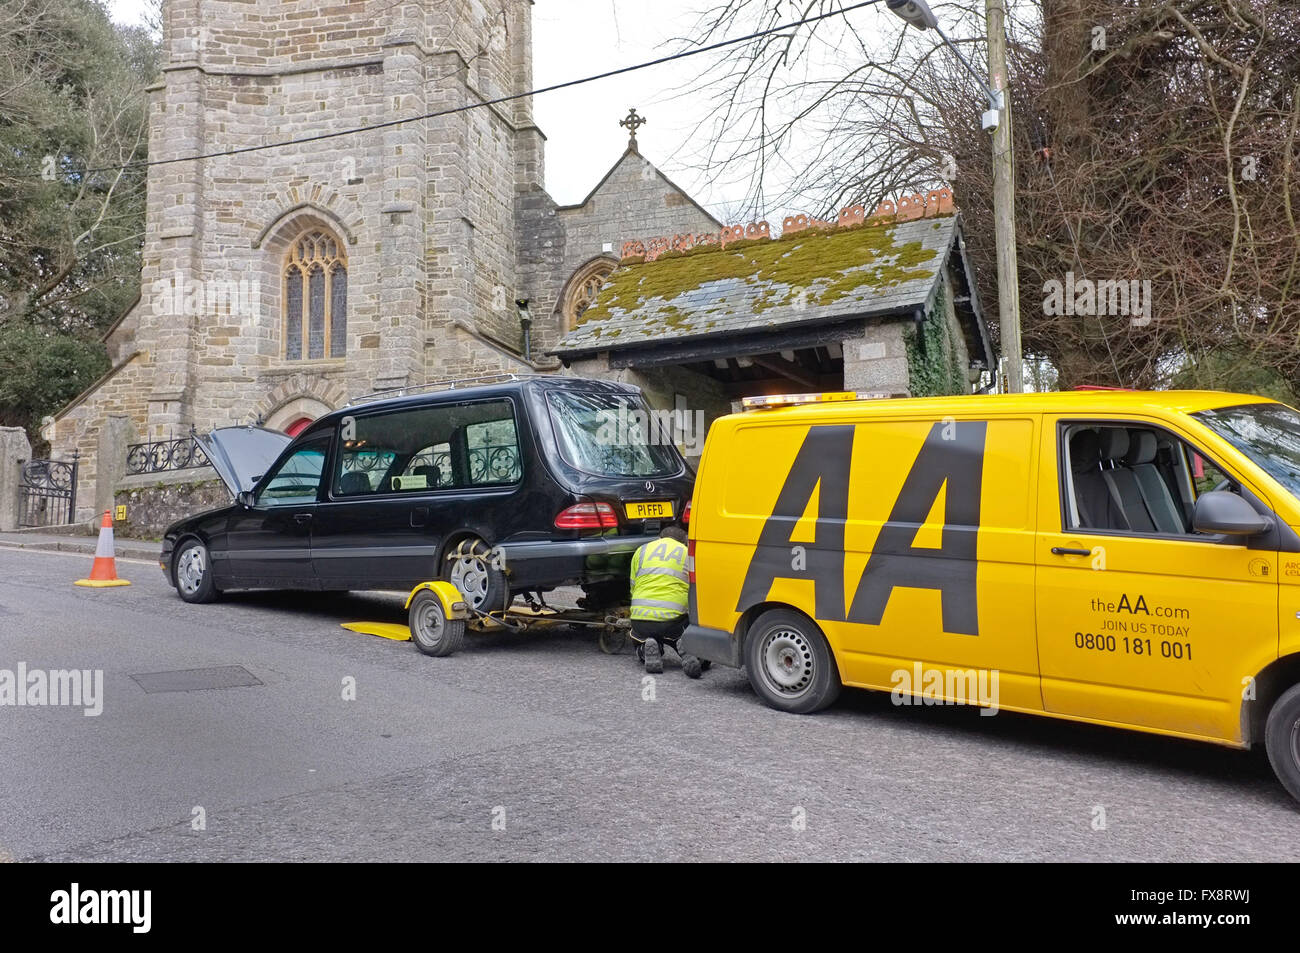 An AA breakdown vehicle preparing to tow away a hearse - Stock Image